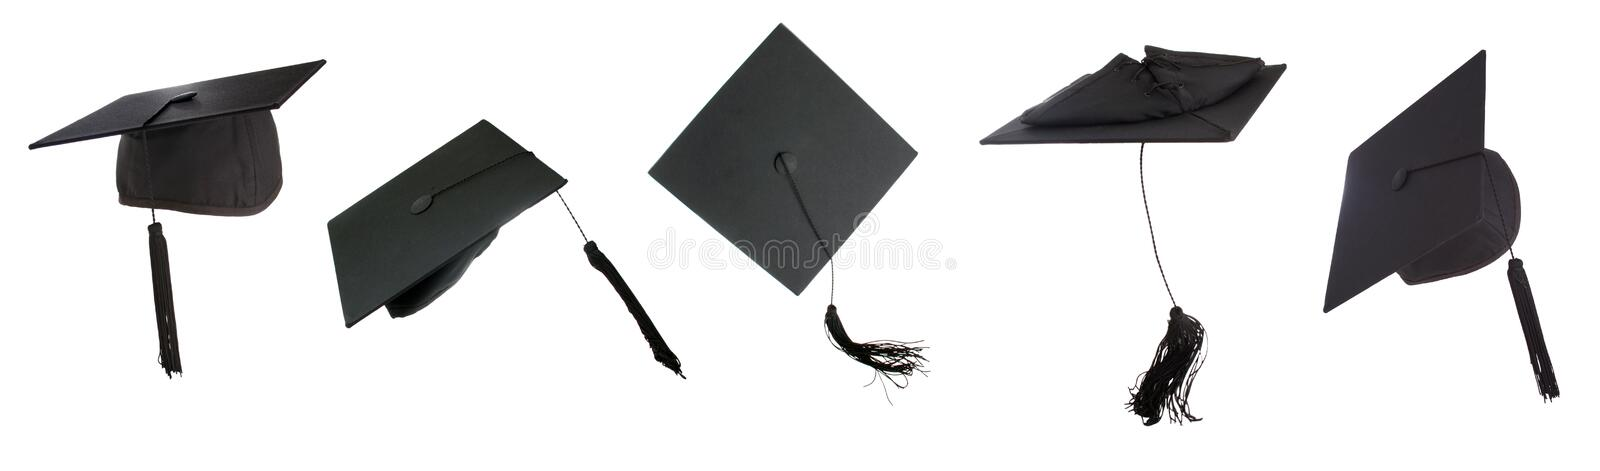 Tossing mortarboards royalty free stock photography